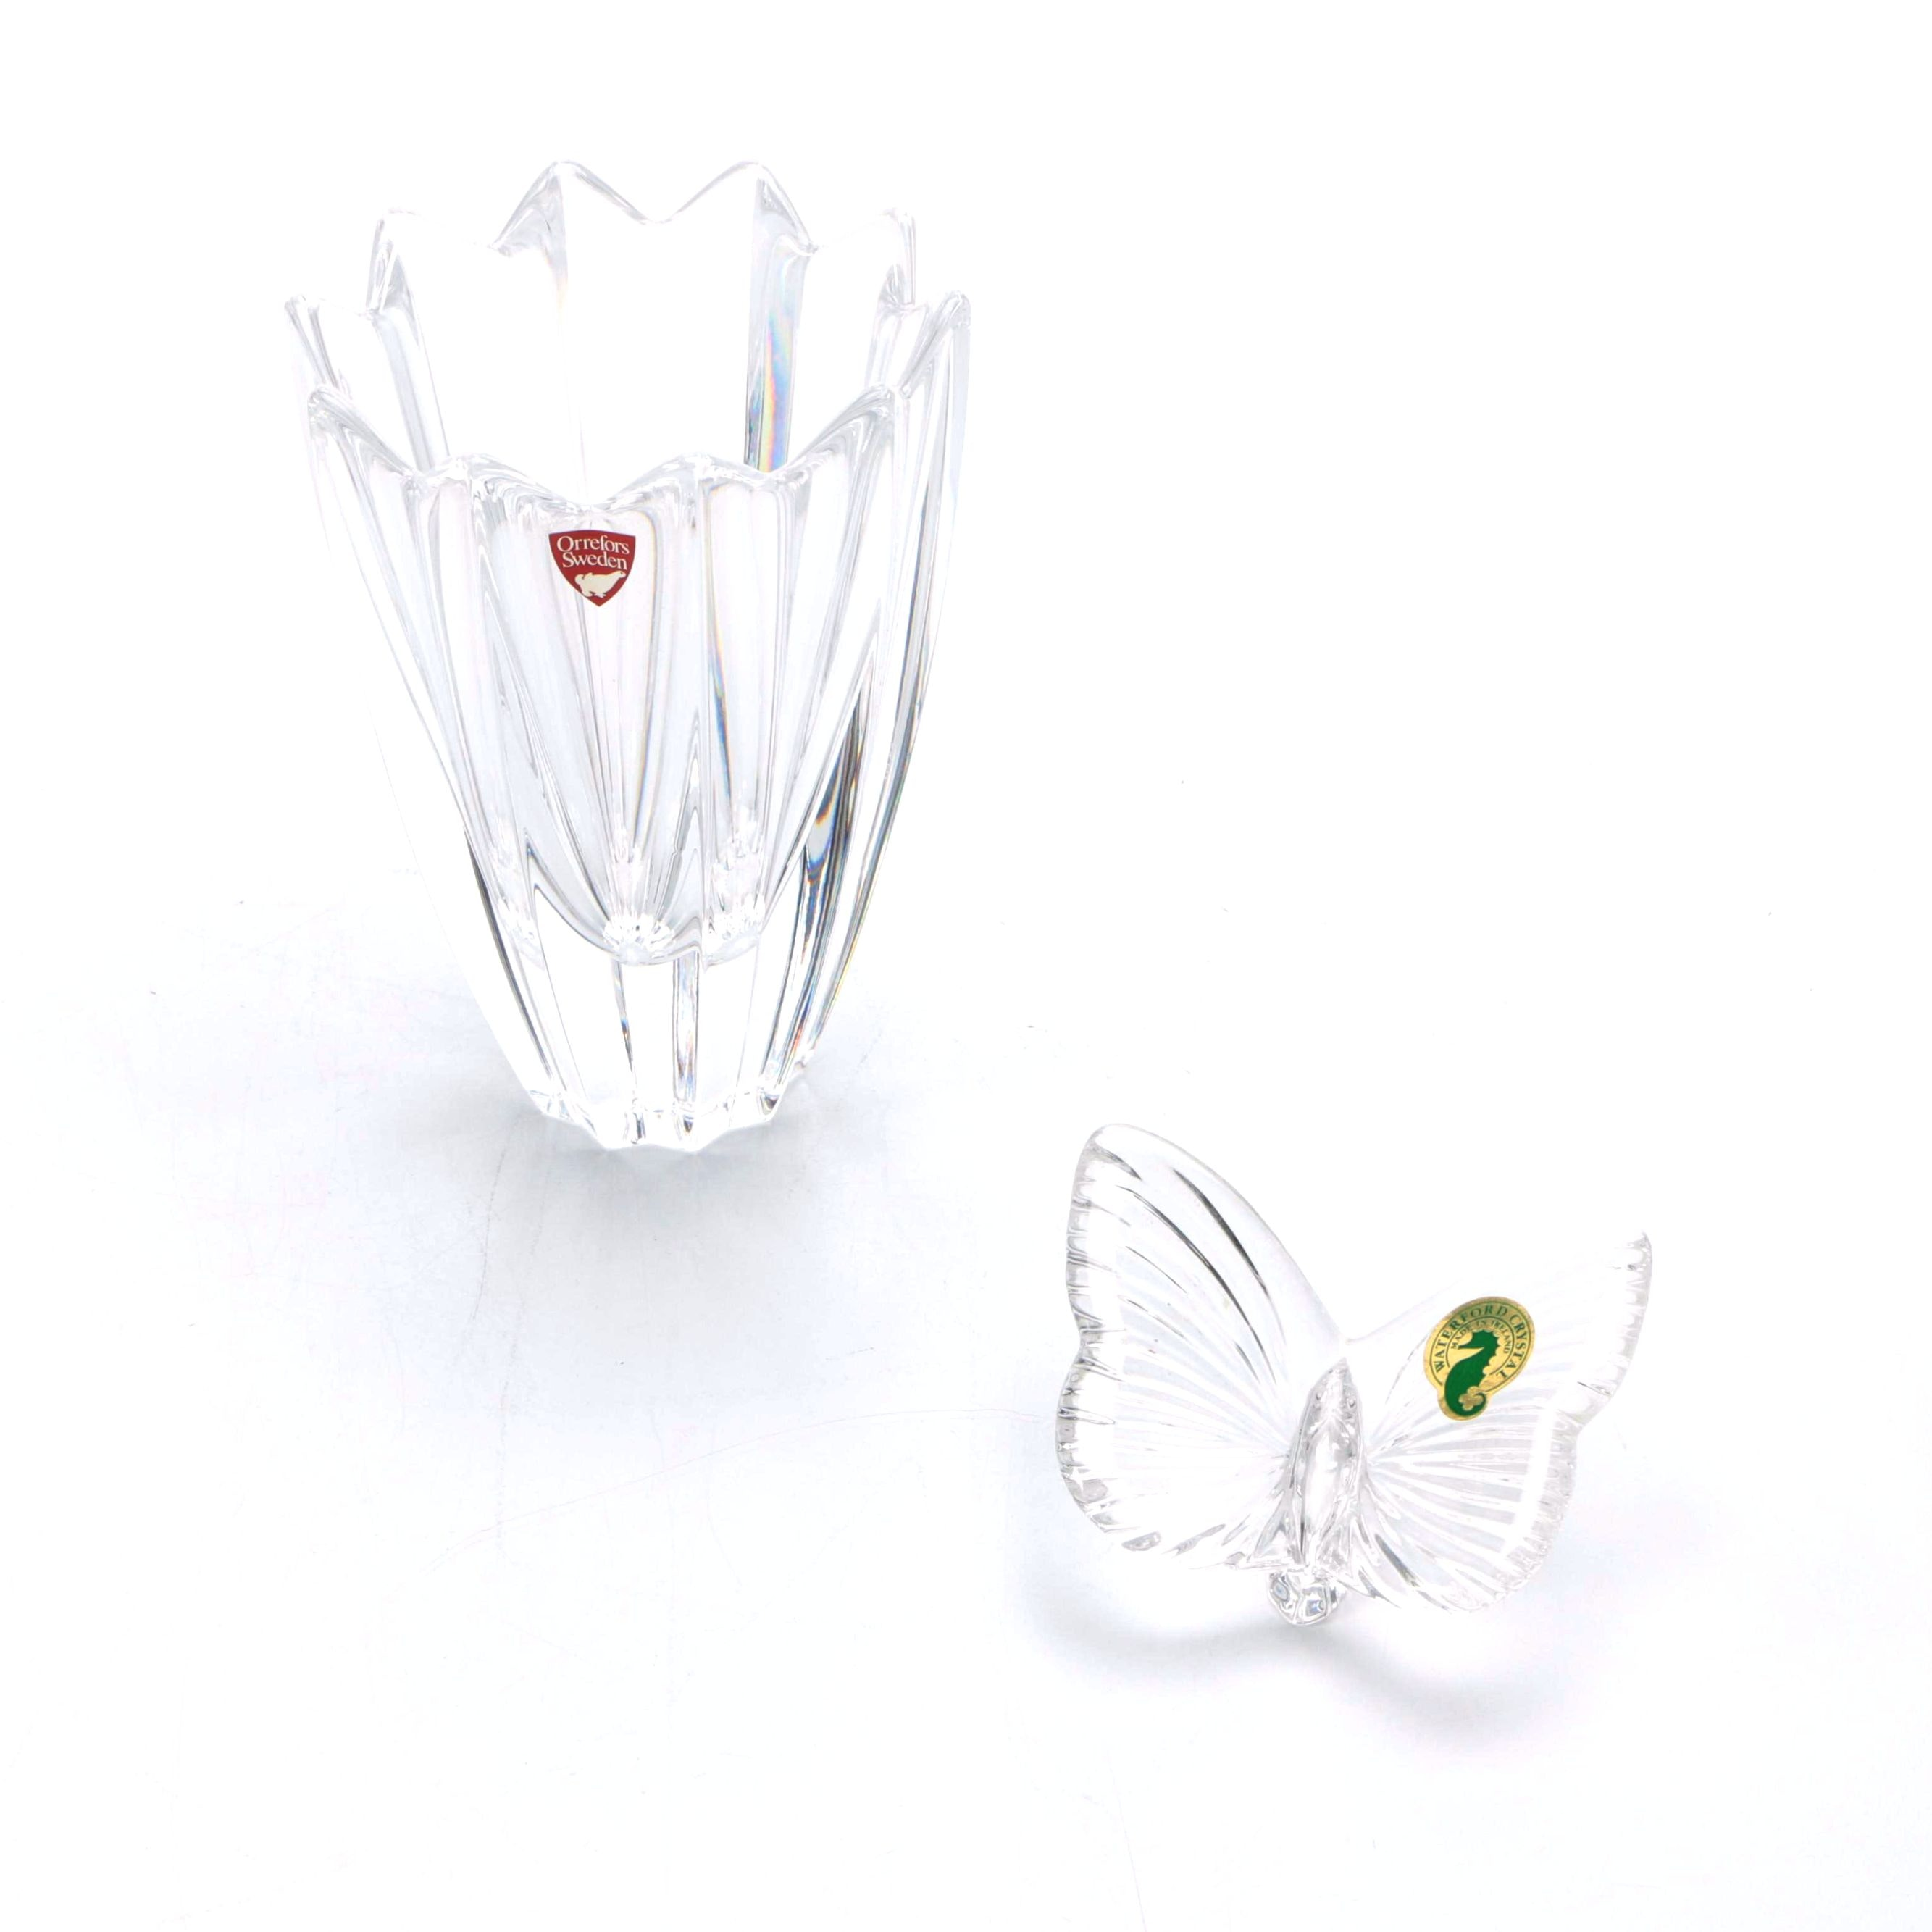 Orrefors Crystal Vase and Waterford Butterfly